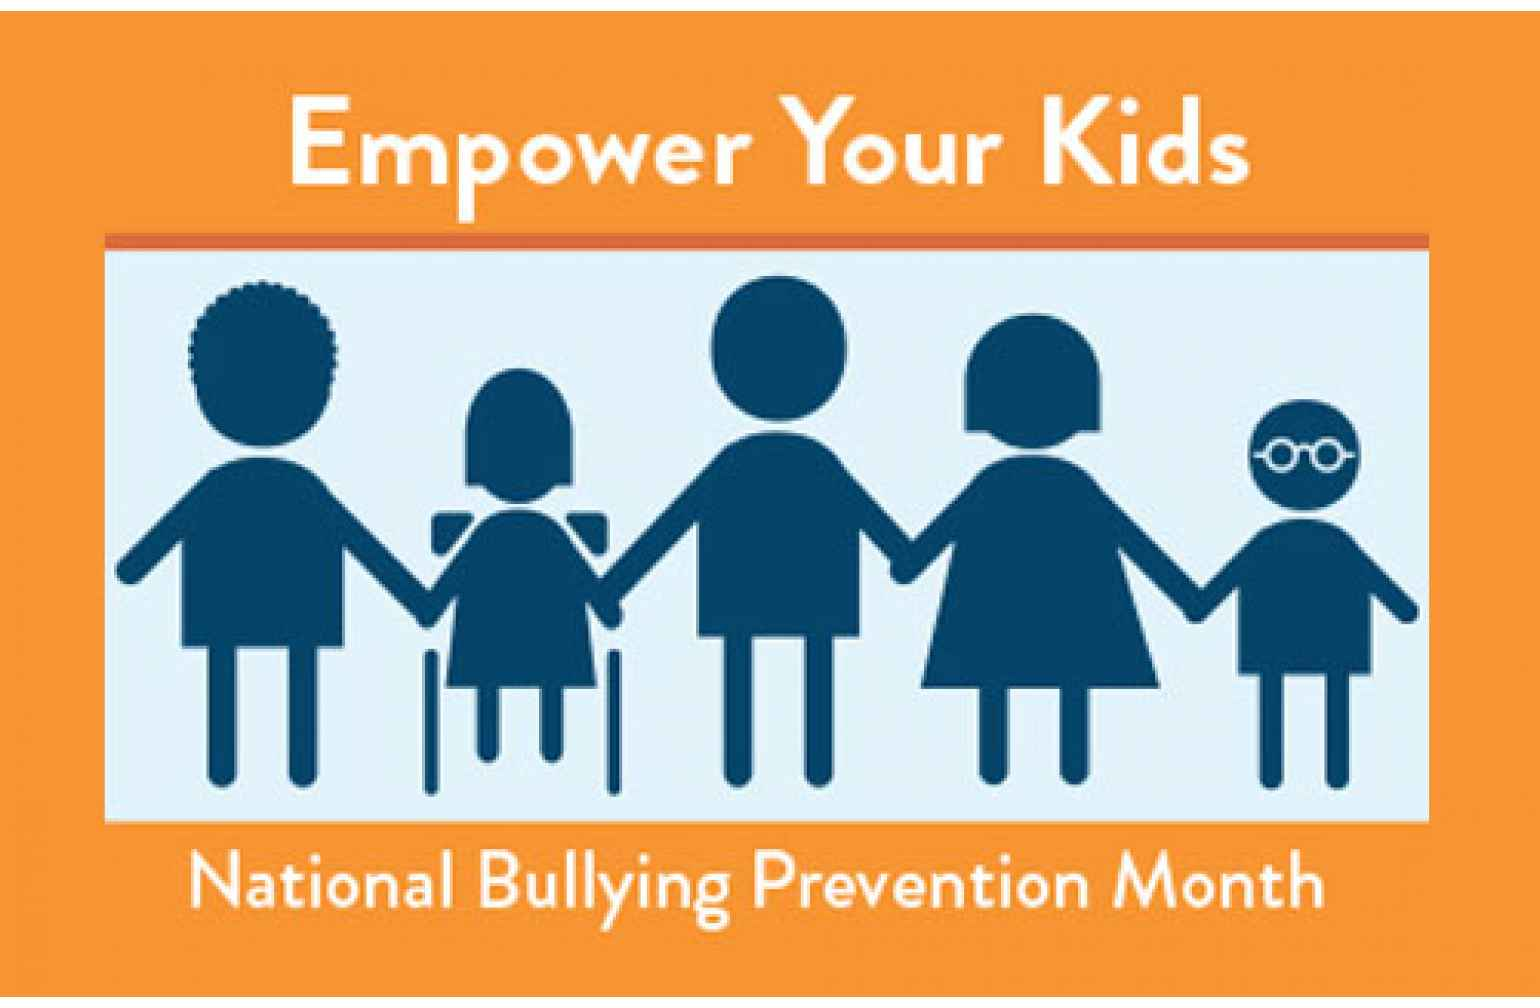 Empower Your Kids National Bullying Prevention Month